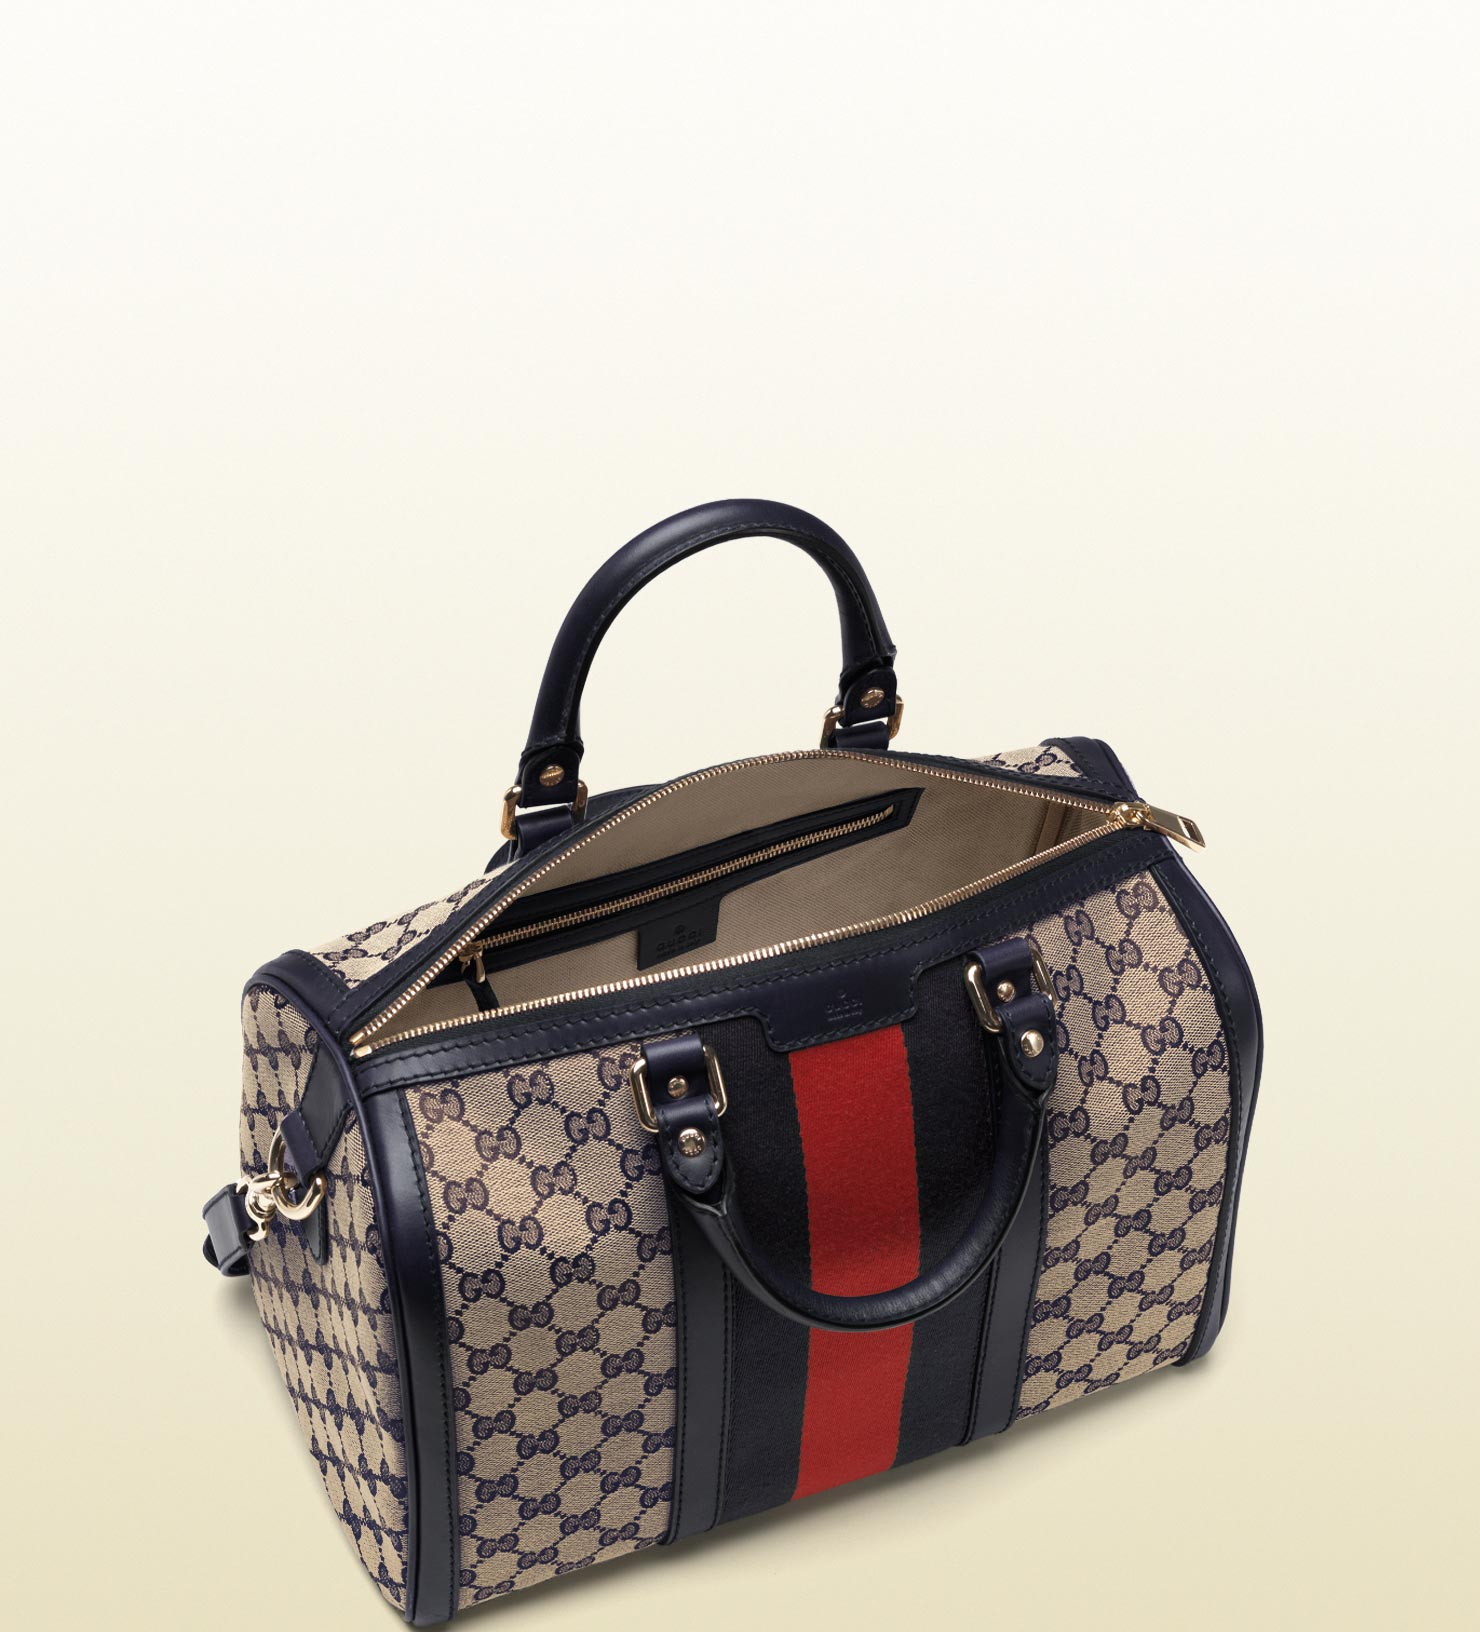 116588f2c8d8ca Gucci Wallets Bloomingdale's | Stanford Center for Opportunity ...